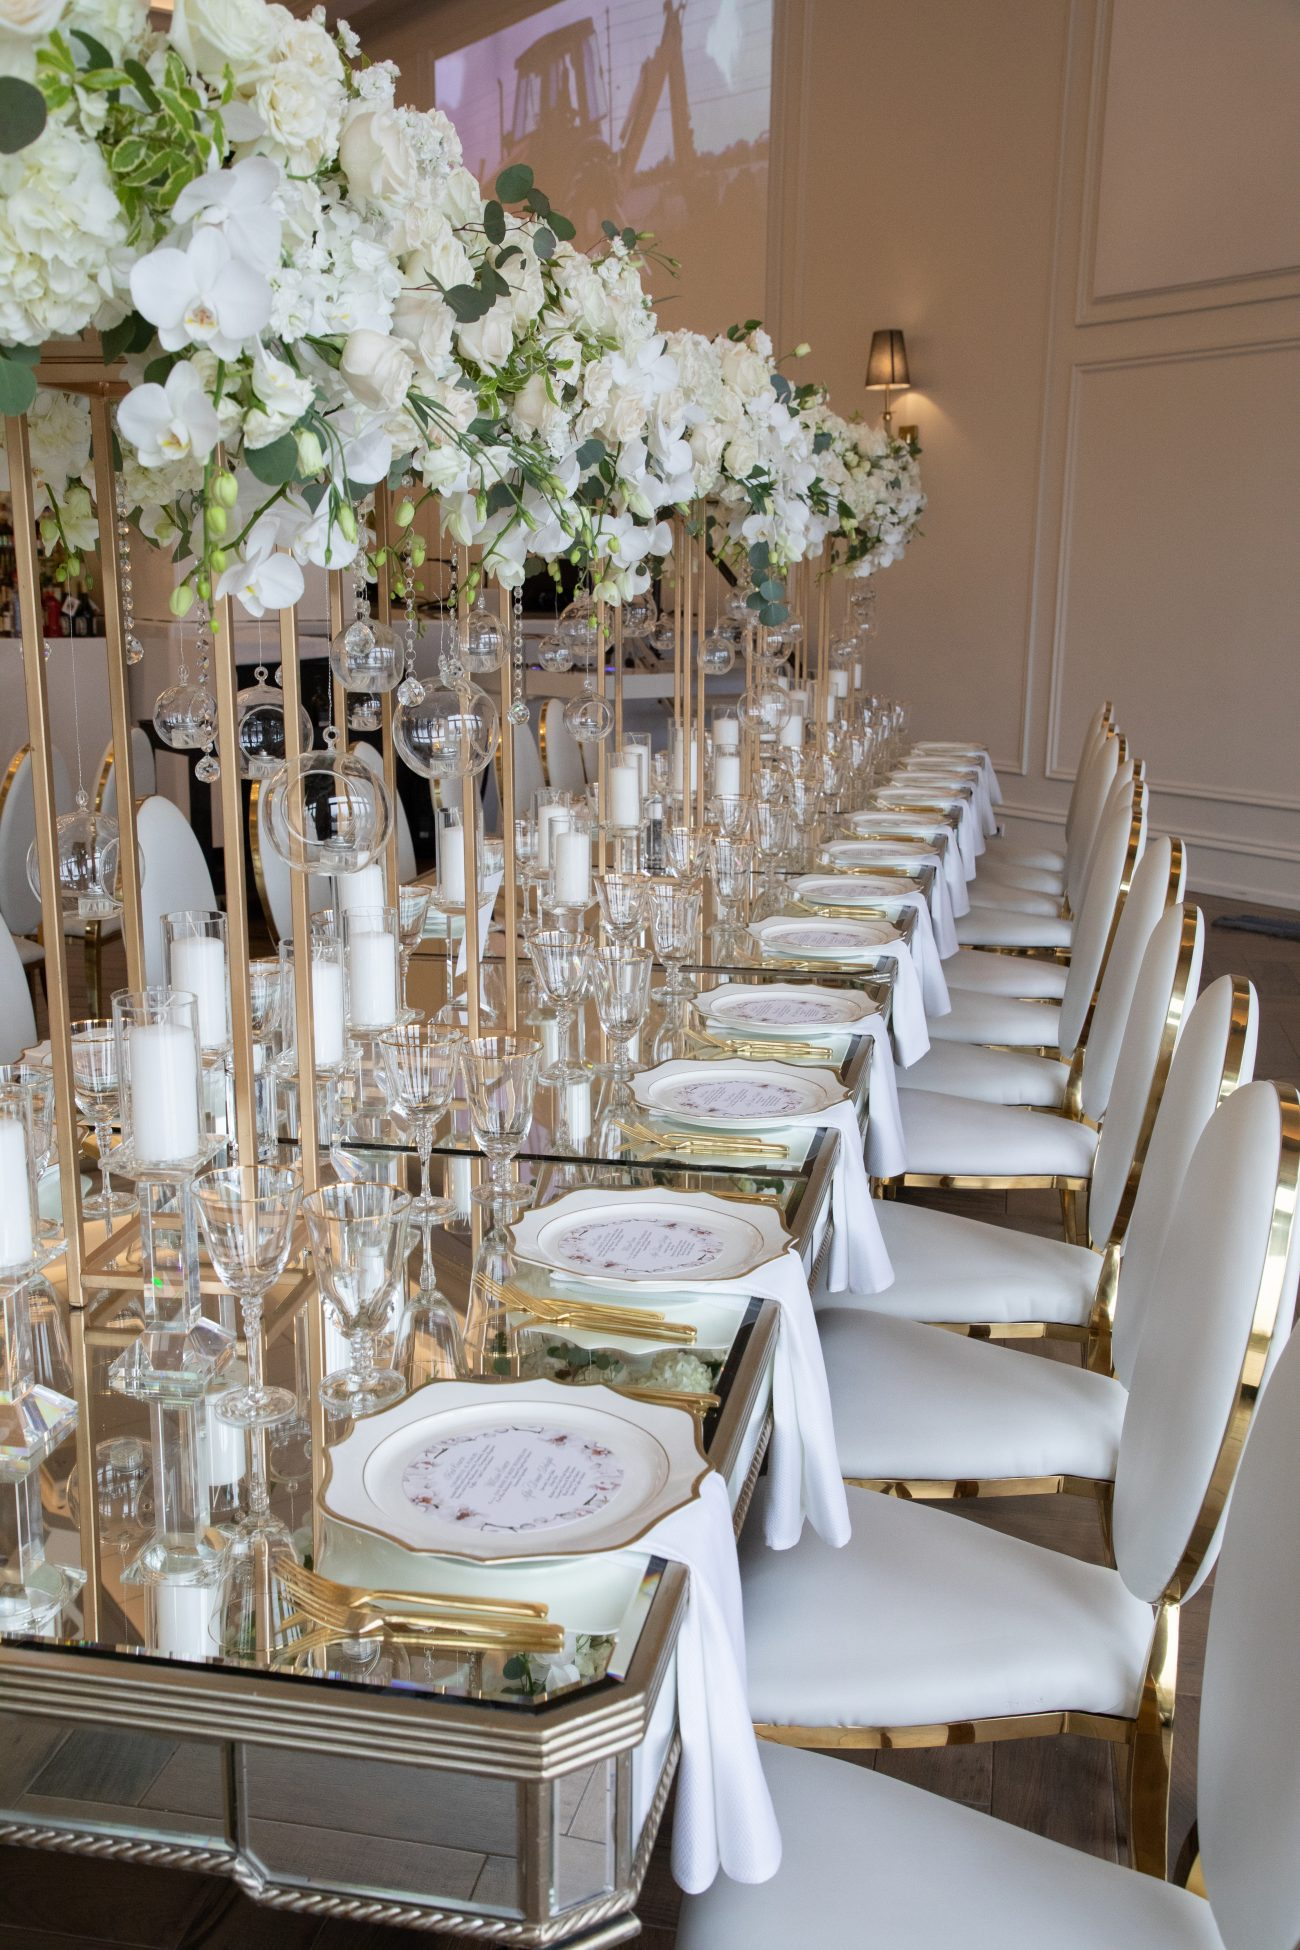 Elegant white and gold table setting with tall centrepieces